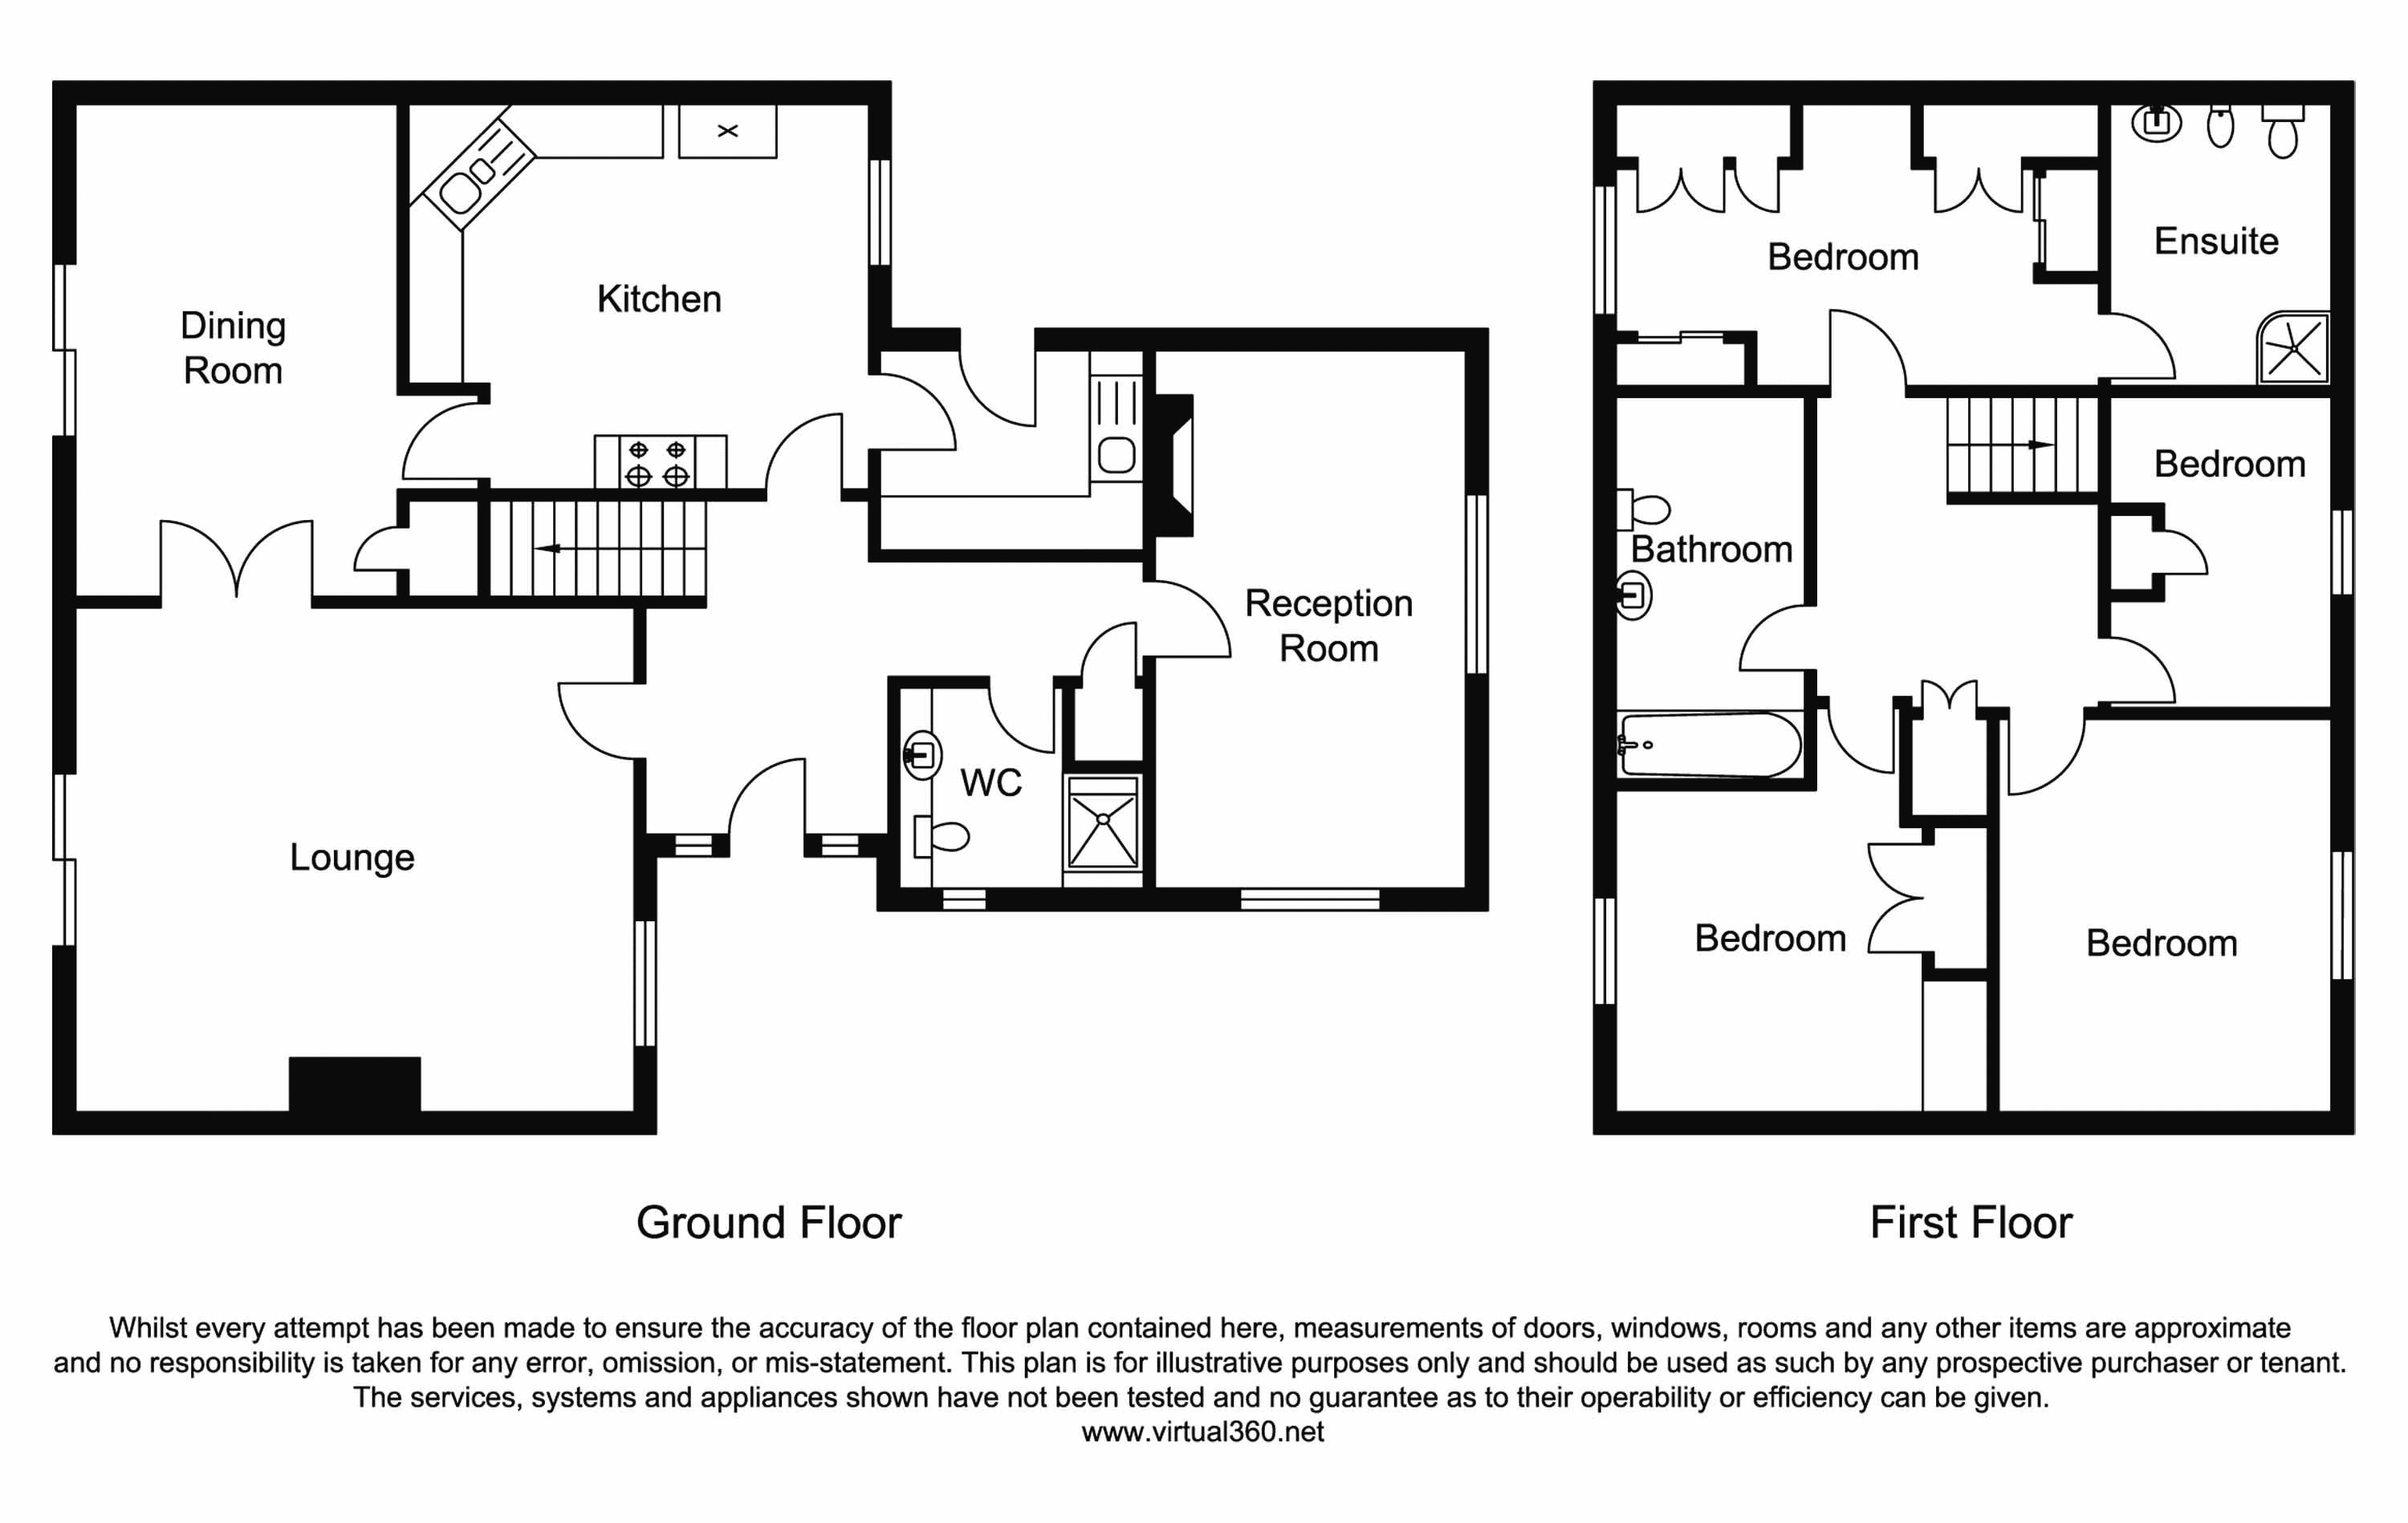 Butterworth Drive, Coventry floor plan